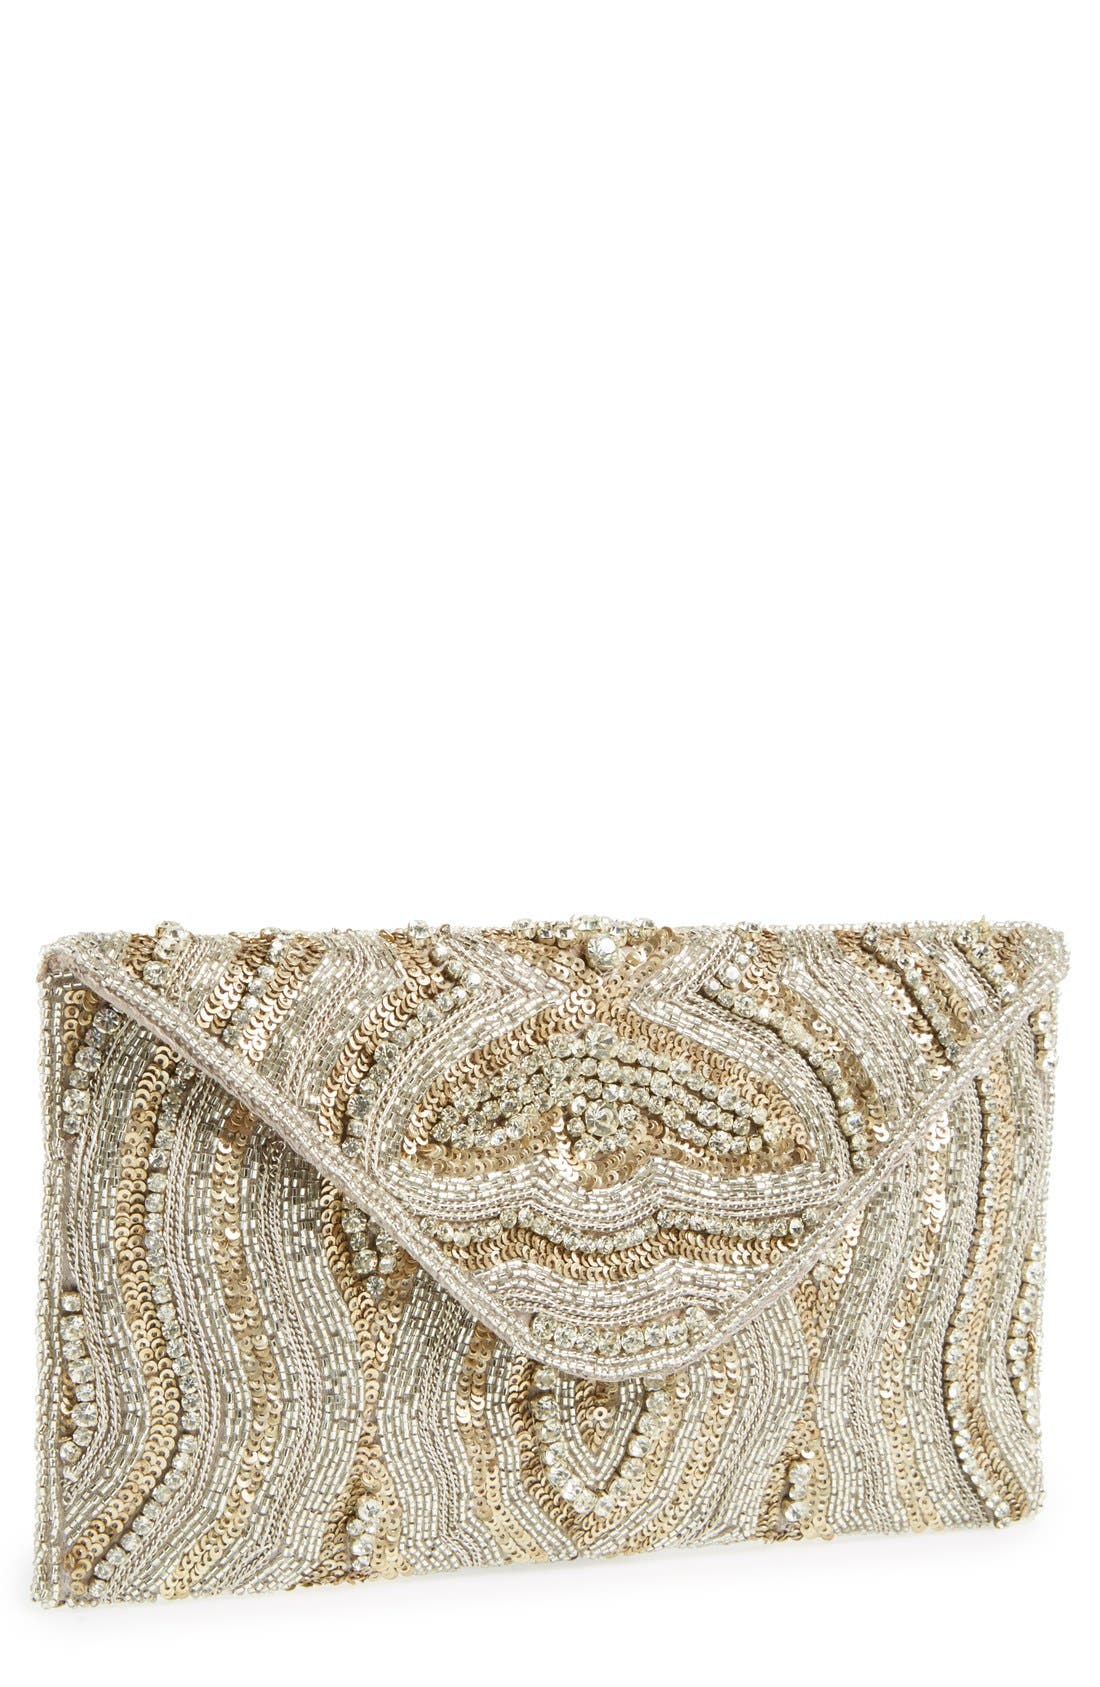 MICKY LONDON HANDBAGS Beaded Envelope Clutch, Main, color, 040